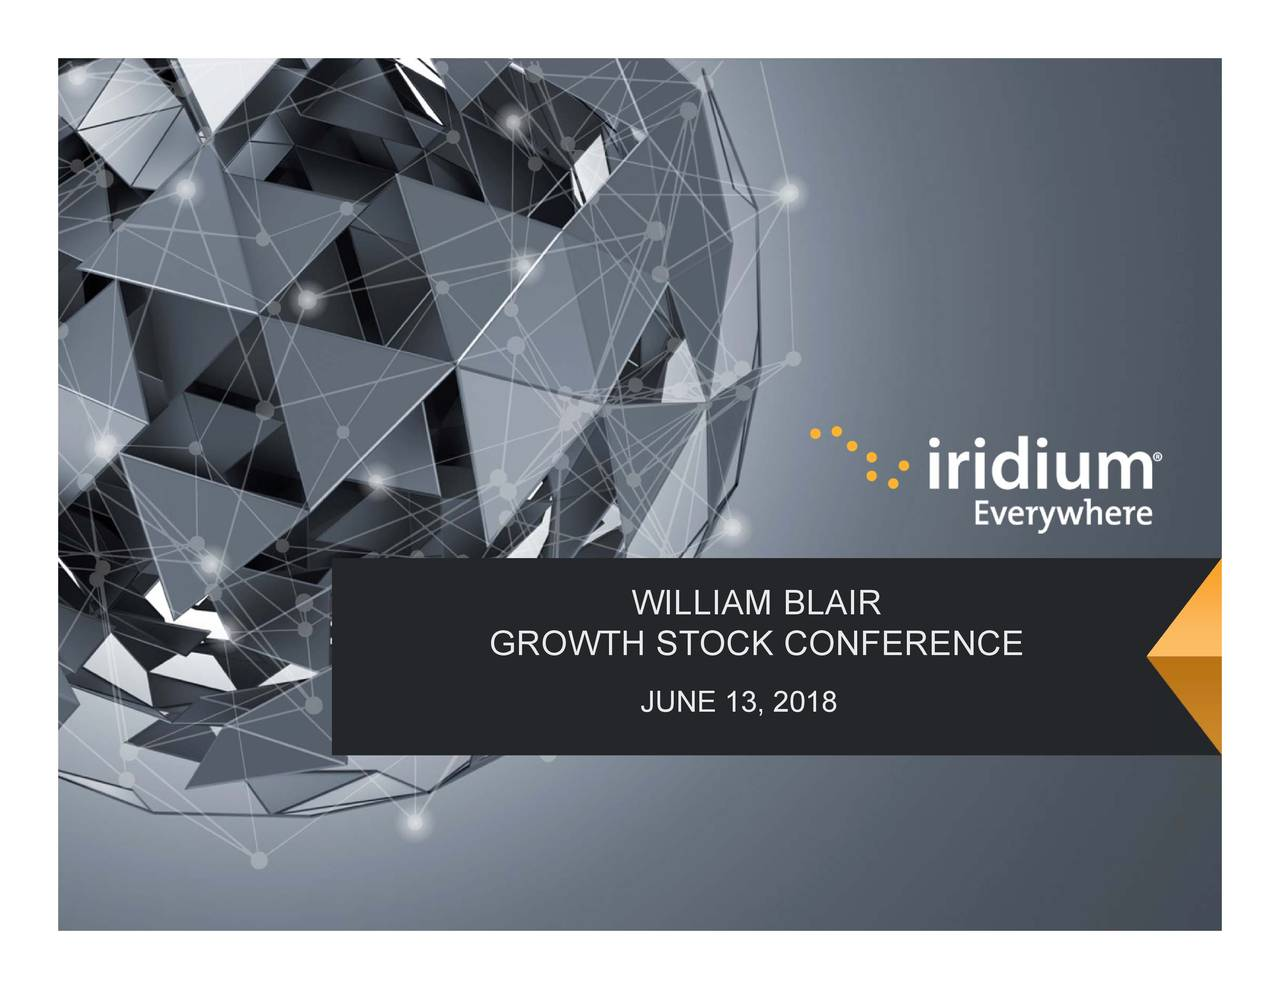 WILLIAM BLAIR GROWTH STOCK CONFERENCE